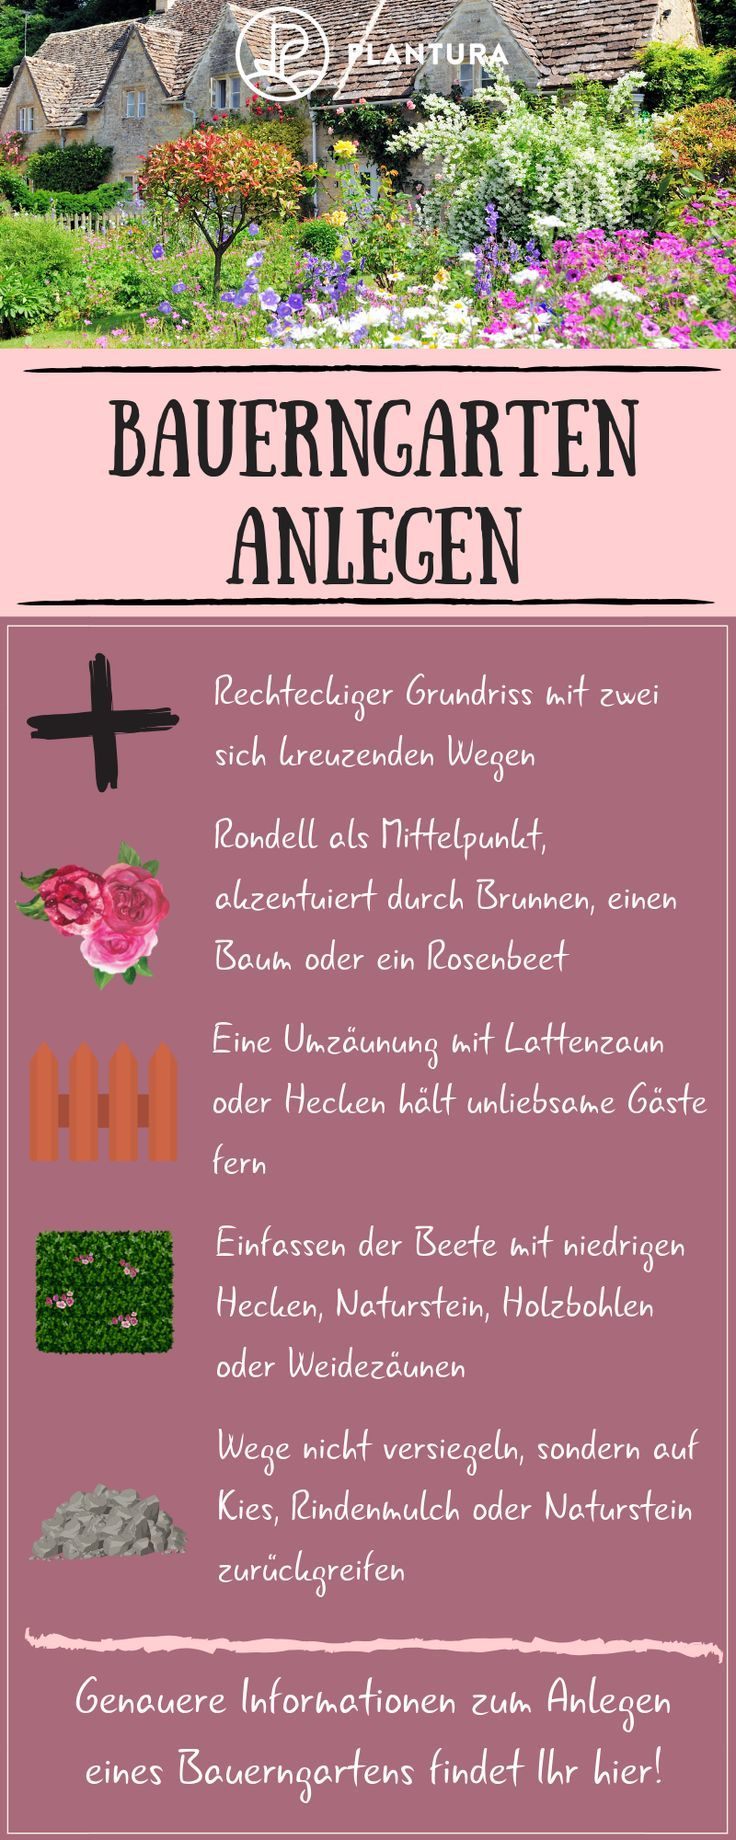 Bauerngarten: The best plants and tips for mooring